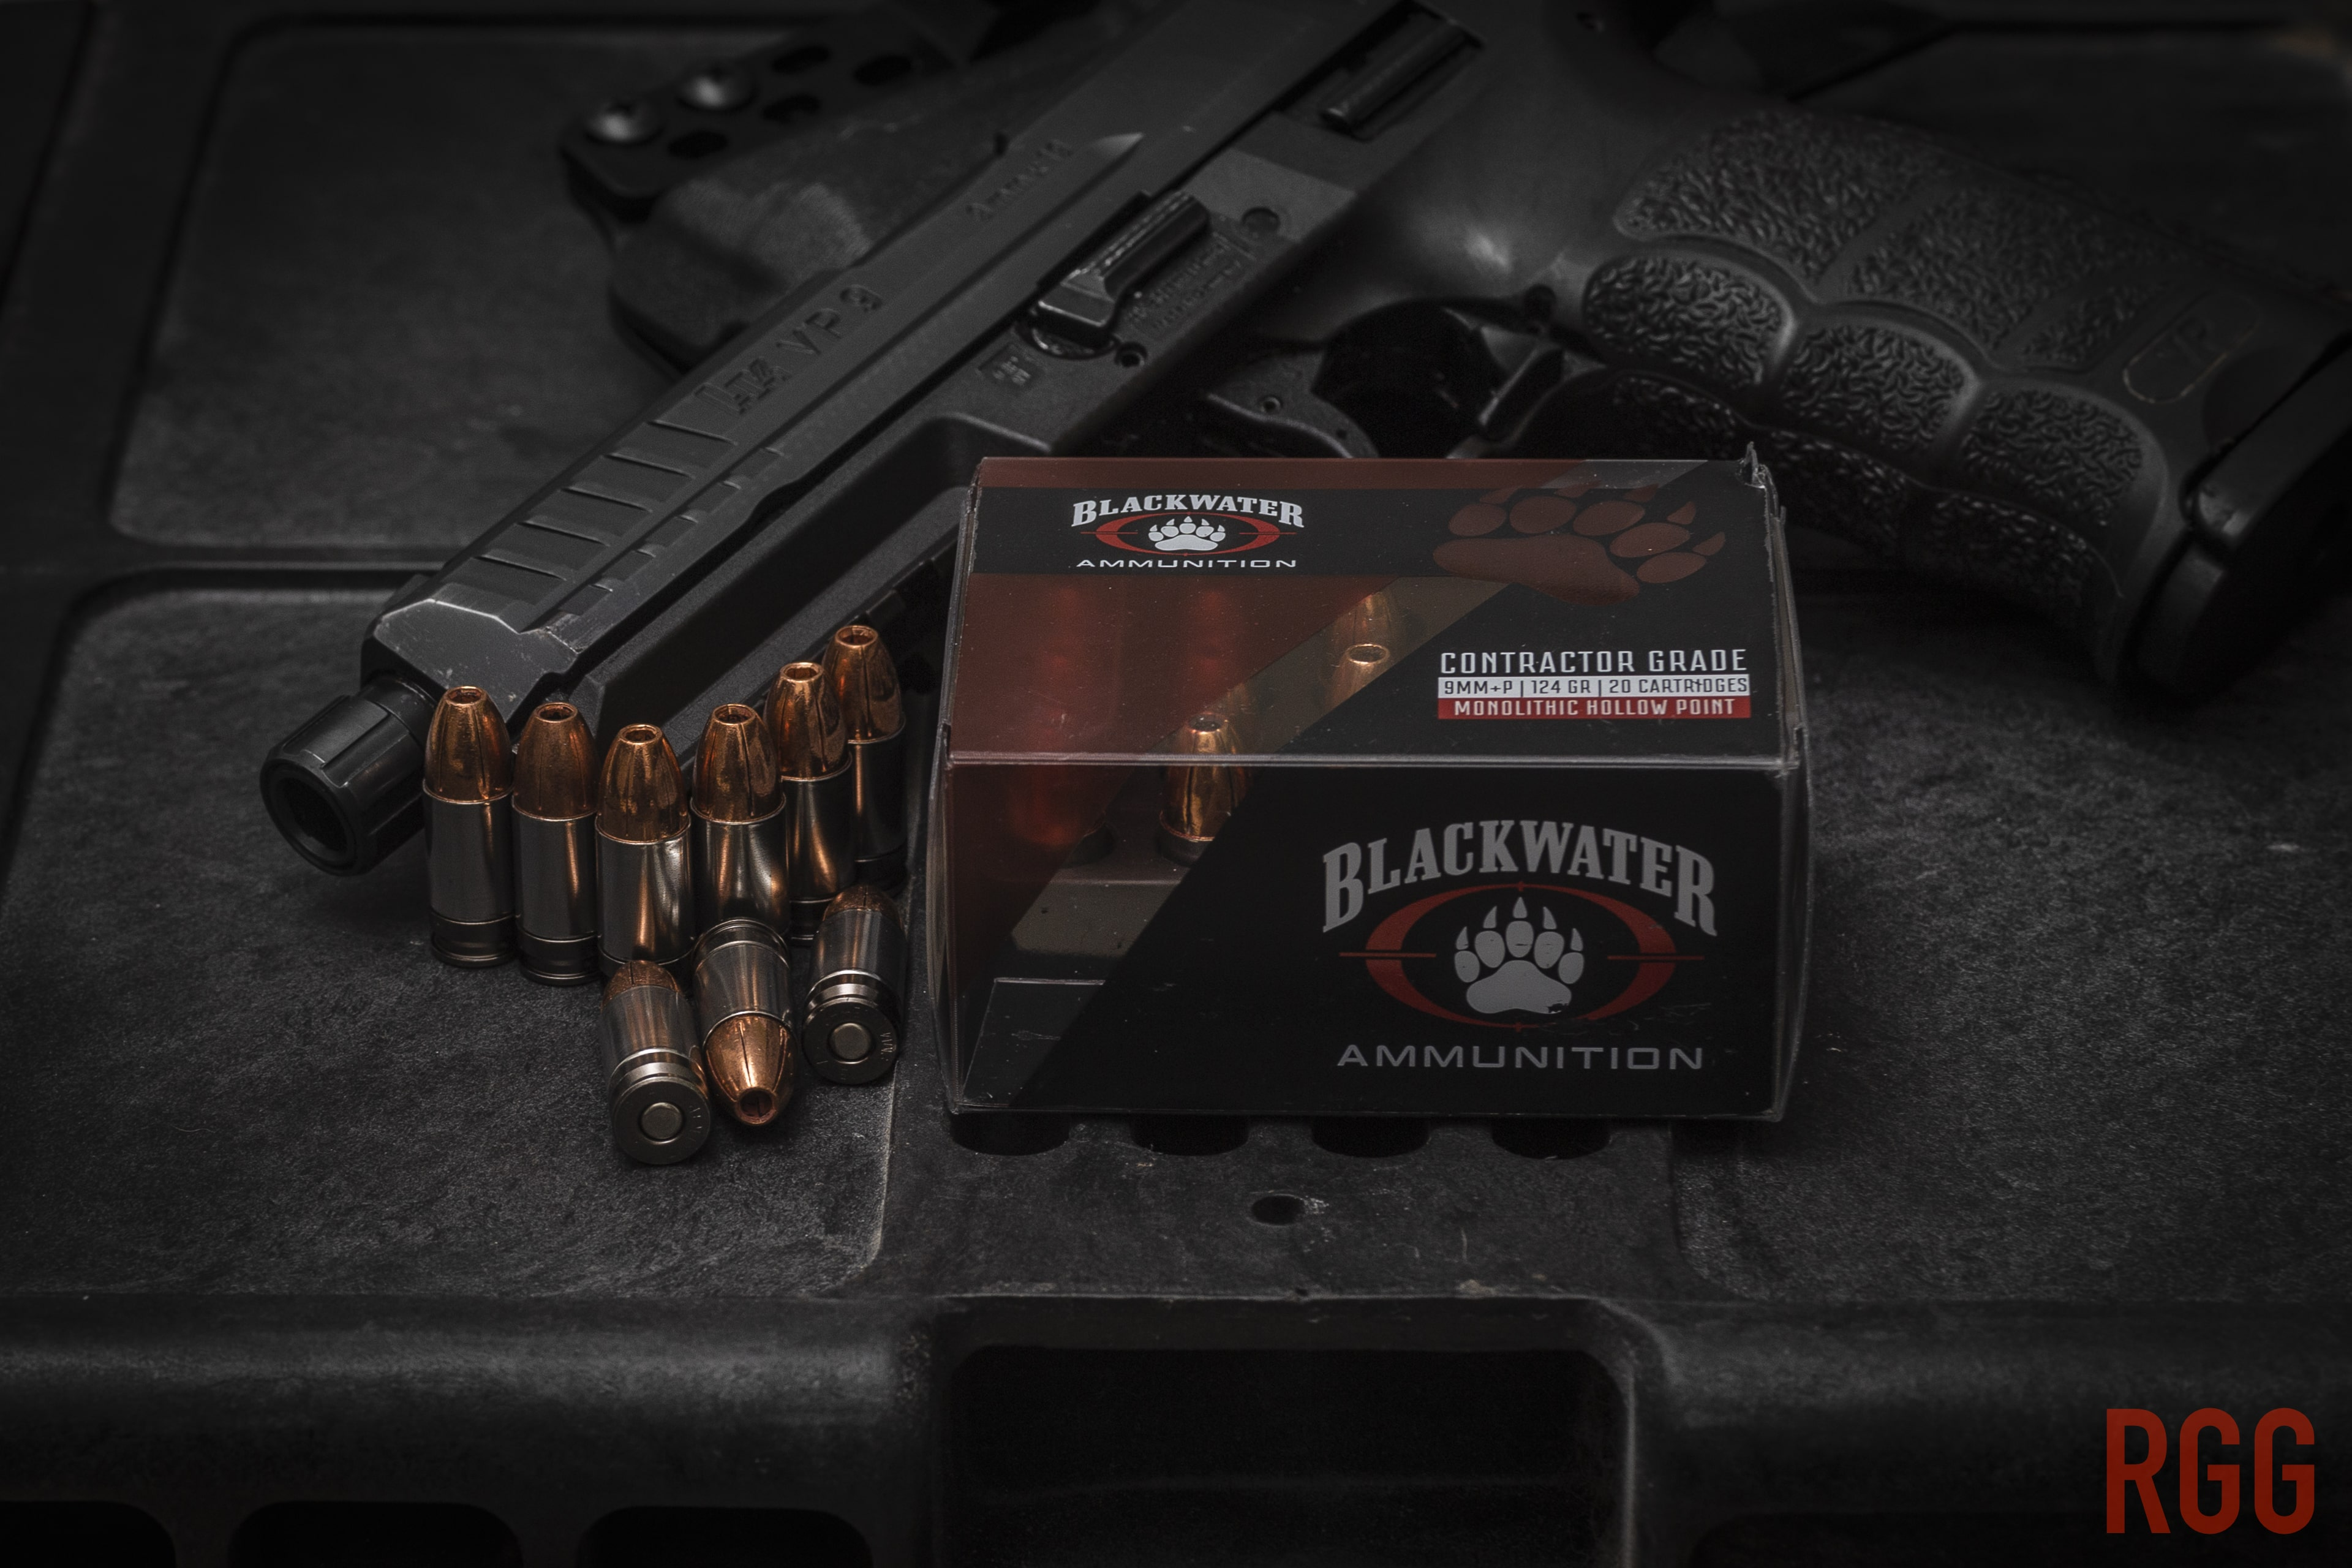 Blackwater Ammunition Contractor Grade 9mm 124 Grain +P Monolithic Hollow Point.